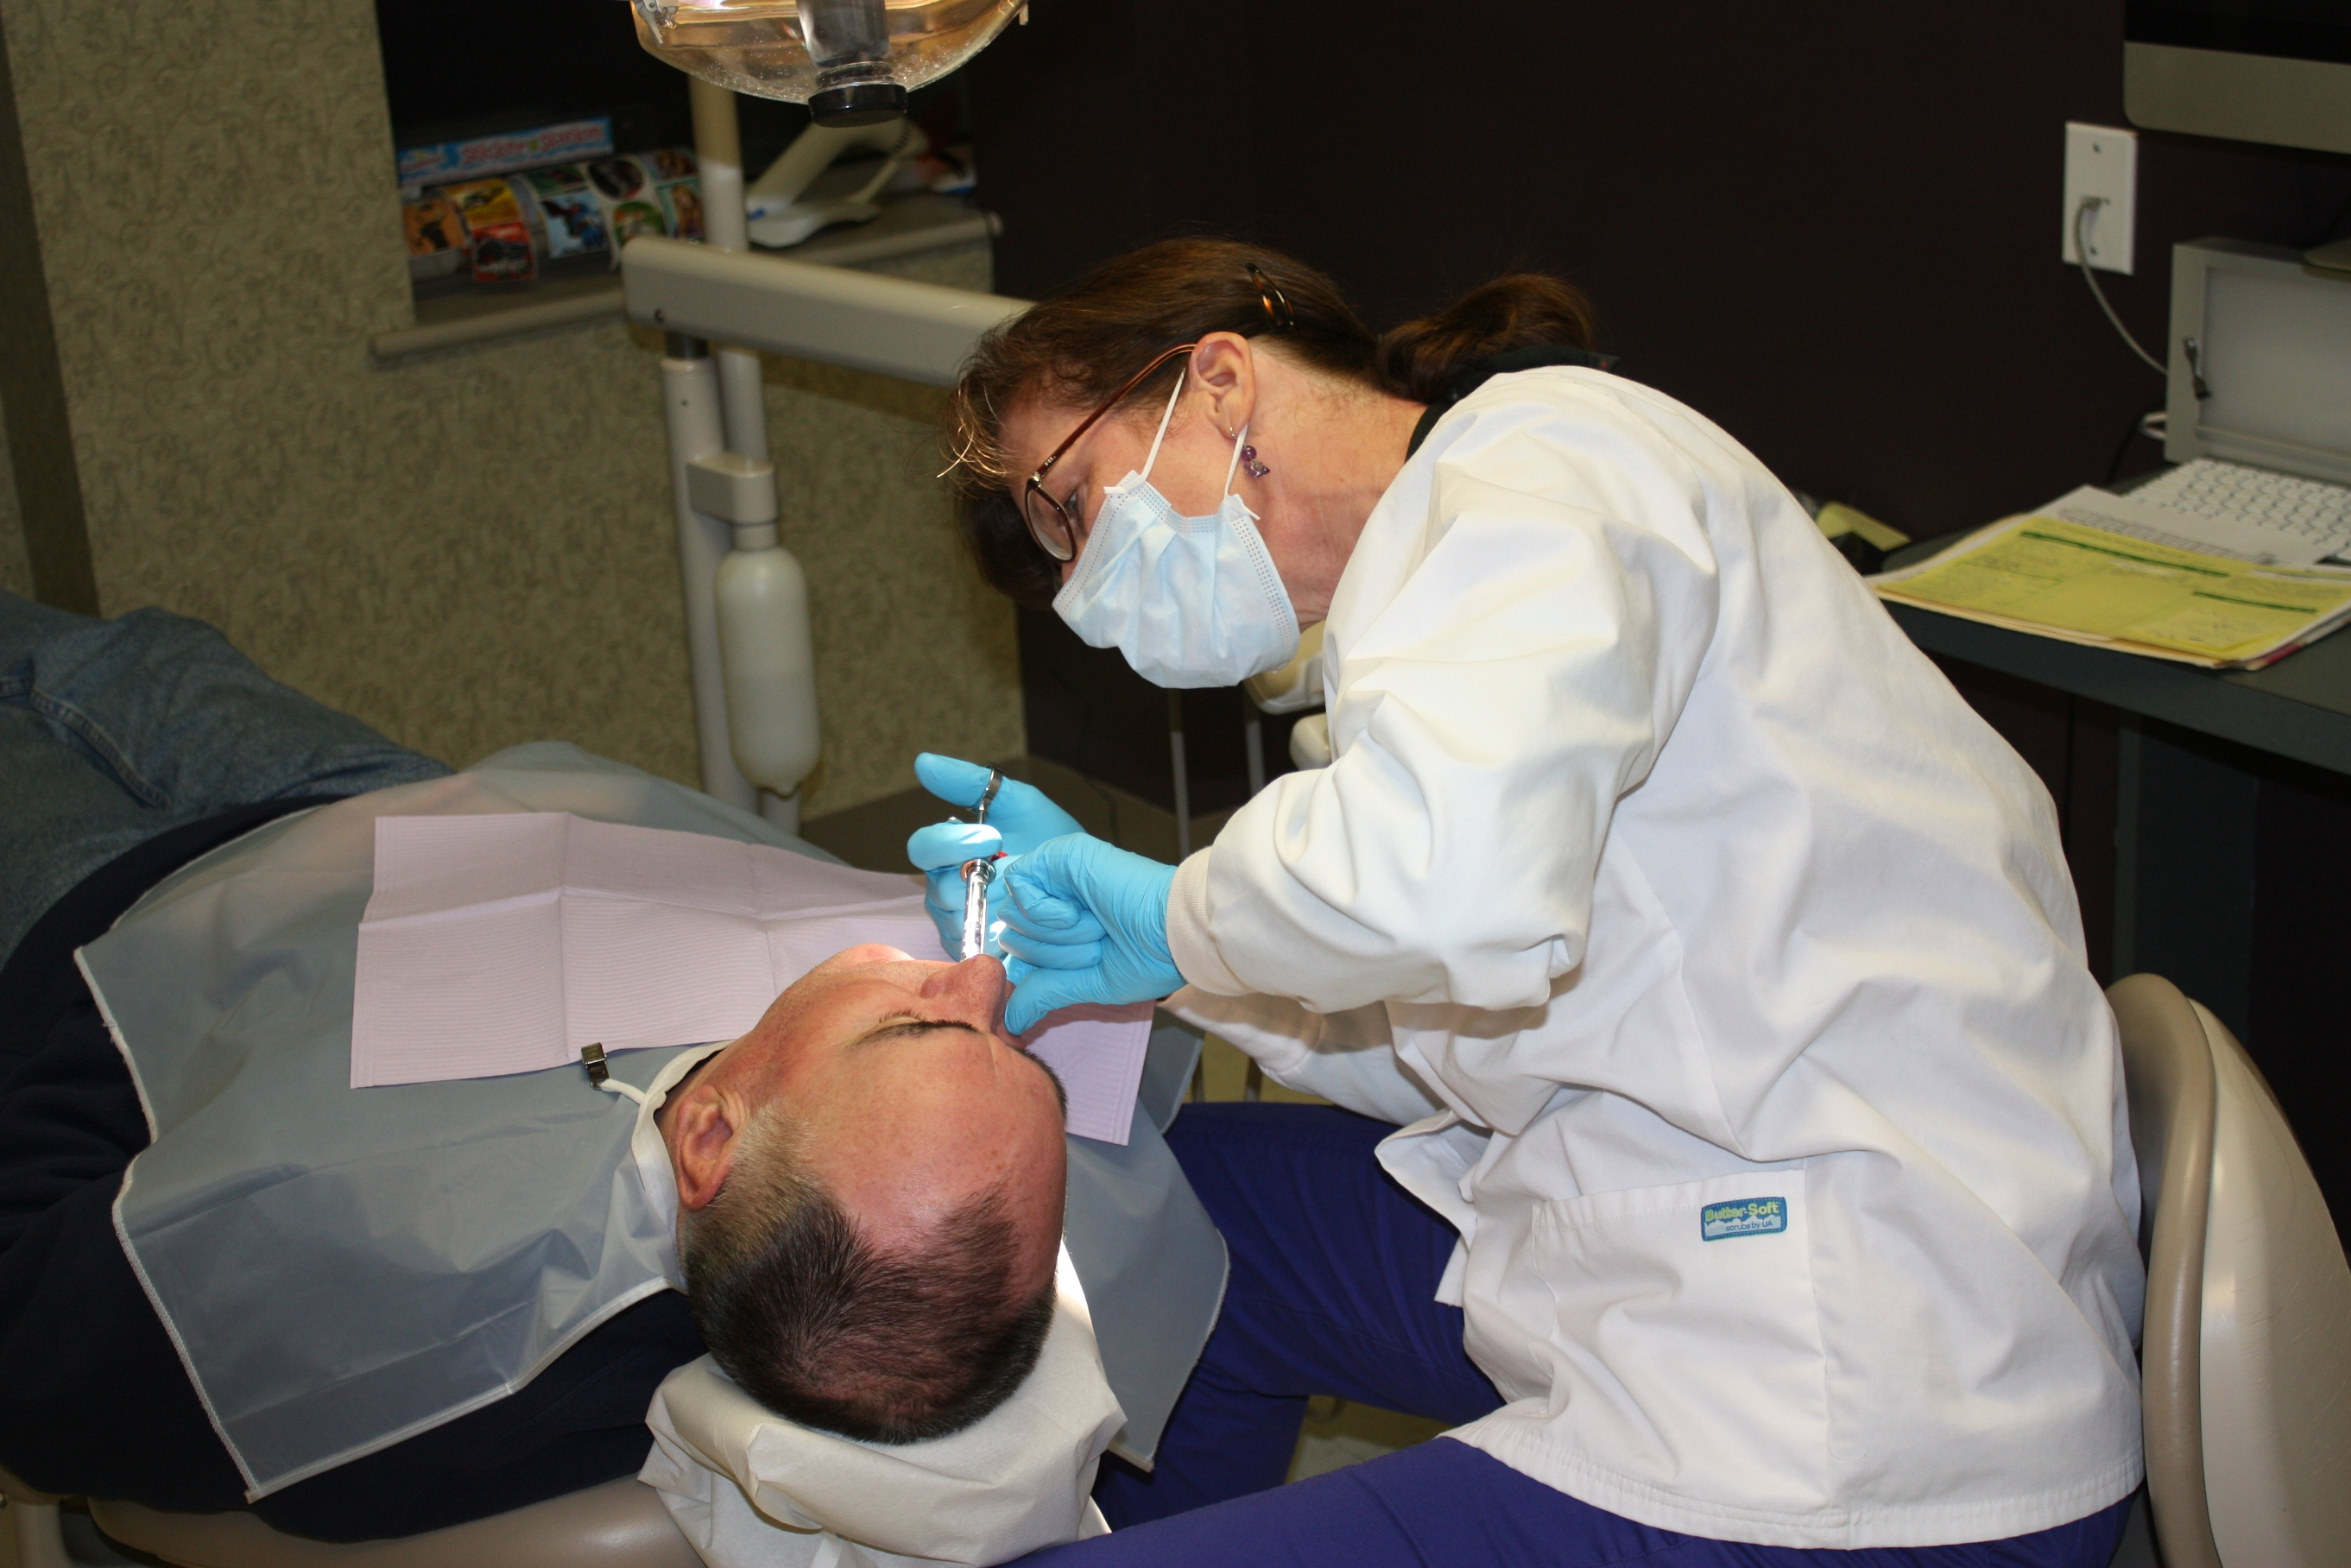 dental hygienists administer local anesthesia archives